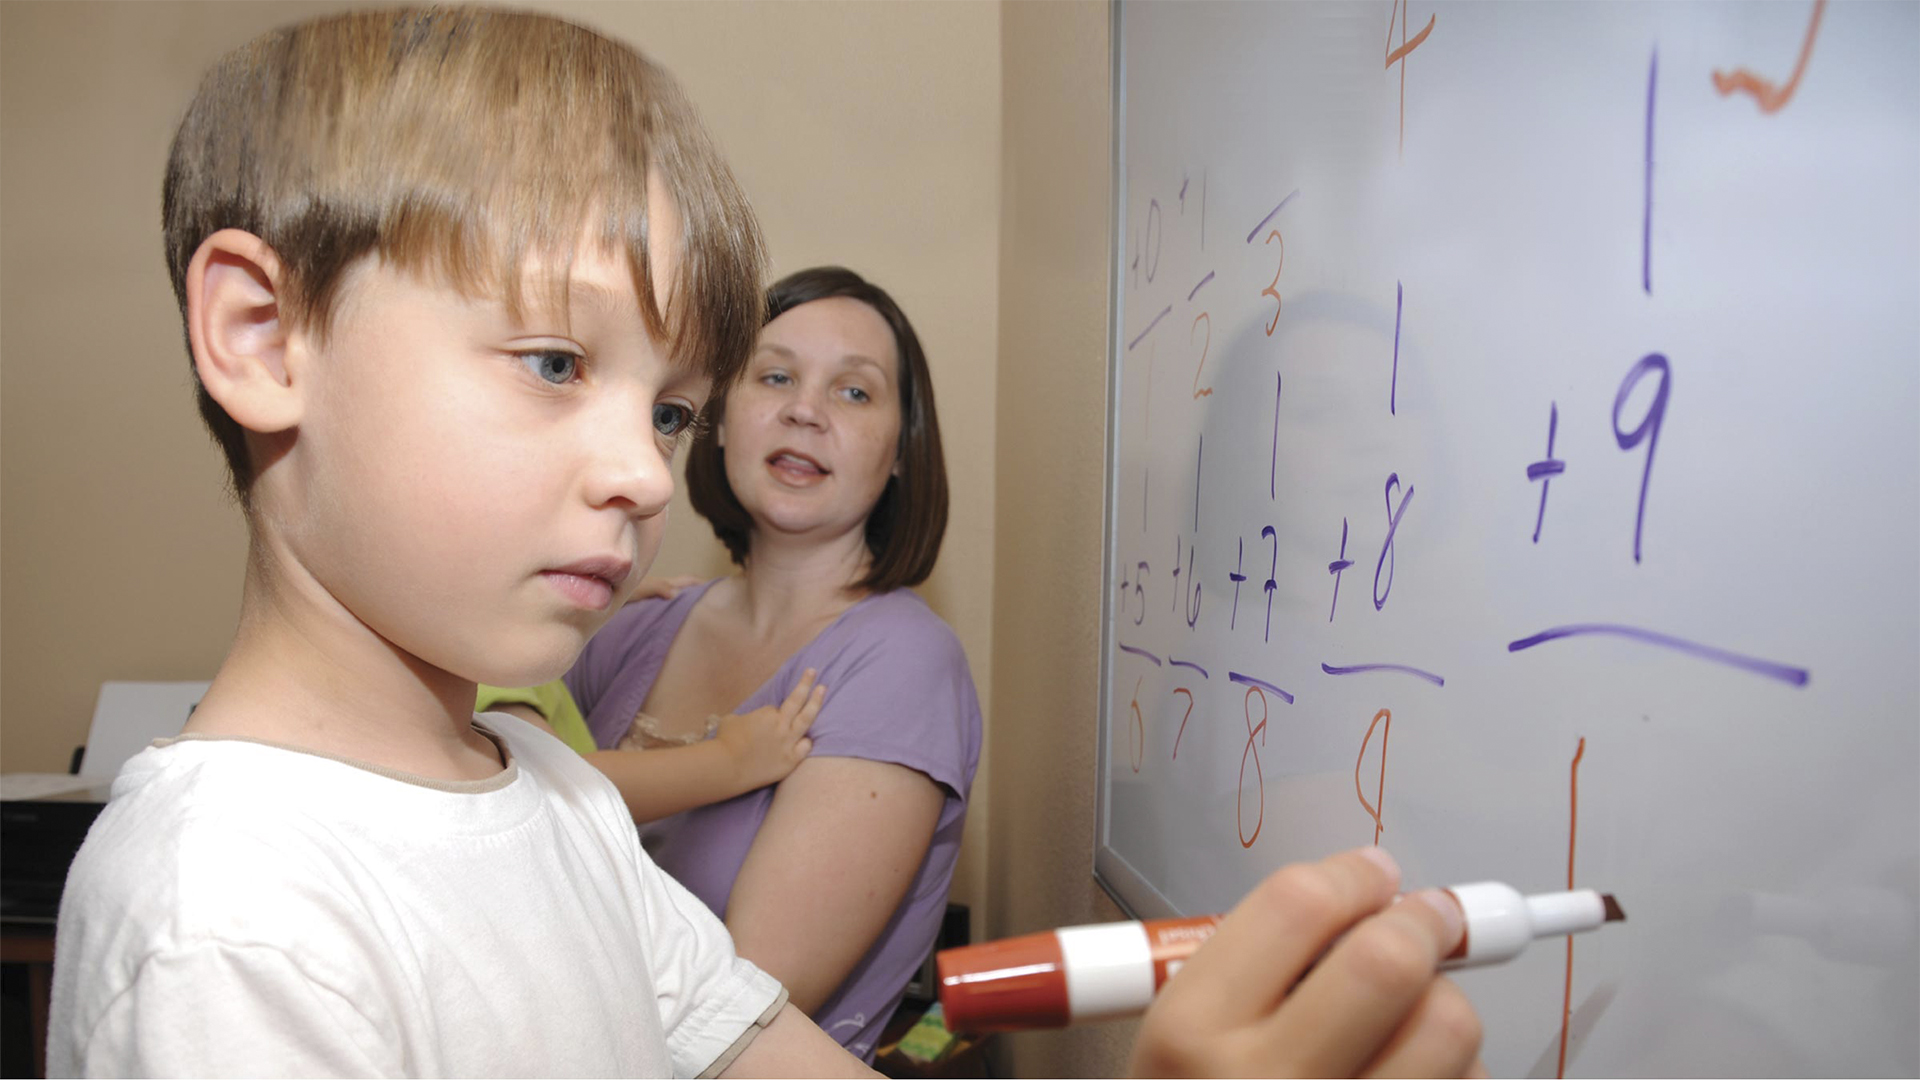 Child writing on whiteboard with mom looking on